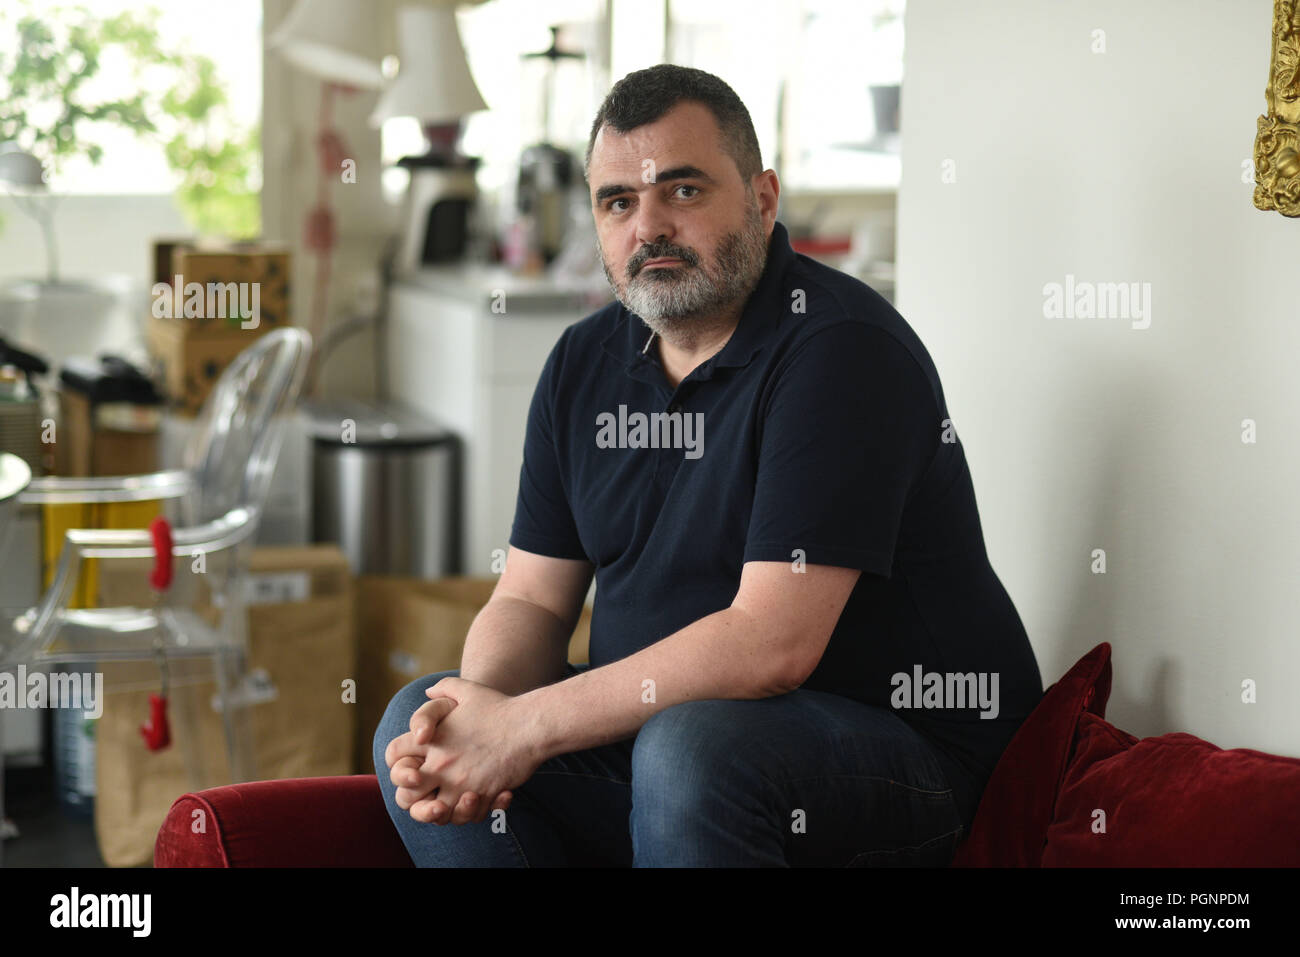 "June 5, 2018 - Paris, France: Portrait of Frederic Desnard, a French employee who took his former employer to court over a ""bore-out"" case and won. He is pictured at his home in Paris, where he spends most of his time since being fired in 2014. Portrait de Frederic Desnard, le premier salarie indemnise dans un cas de ""bore-out"". L'ancien salarie d'Interparfums a fait condamne son ex-employeur pour avoir manque de travail suite a une crise d'epylepsie. *** FRANCE OUT / NO SALES TO FRENCH MEDIA *** Stock Photo"